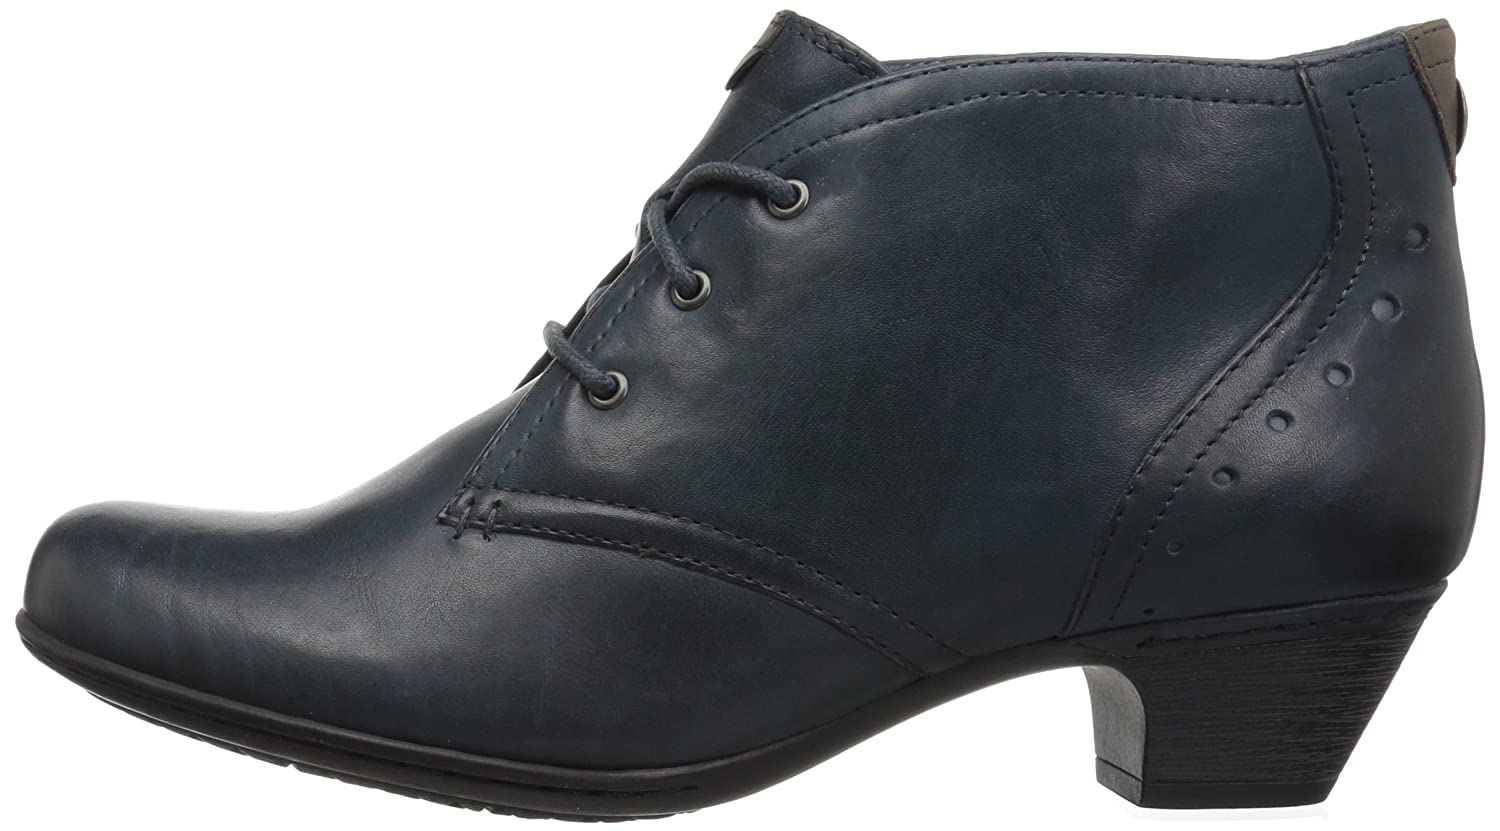 Cobb Hill B01N9VFKSK Rockport Women's Aria-Ch Boot B01N9VFKSK Hill 8 B(M) US|Oxford Blue b2109f